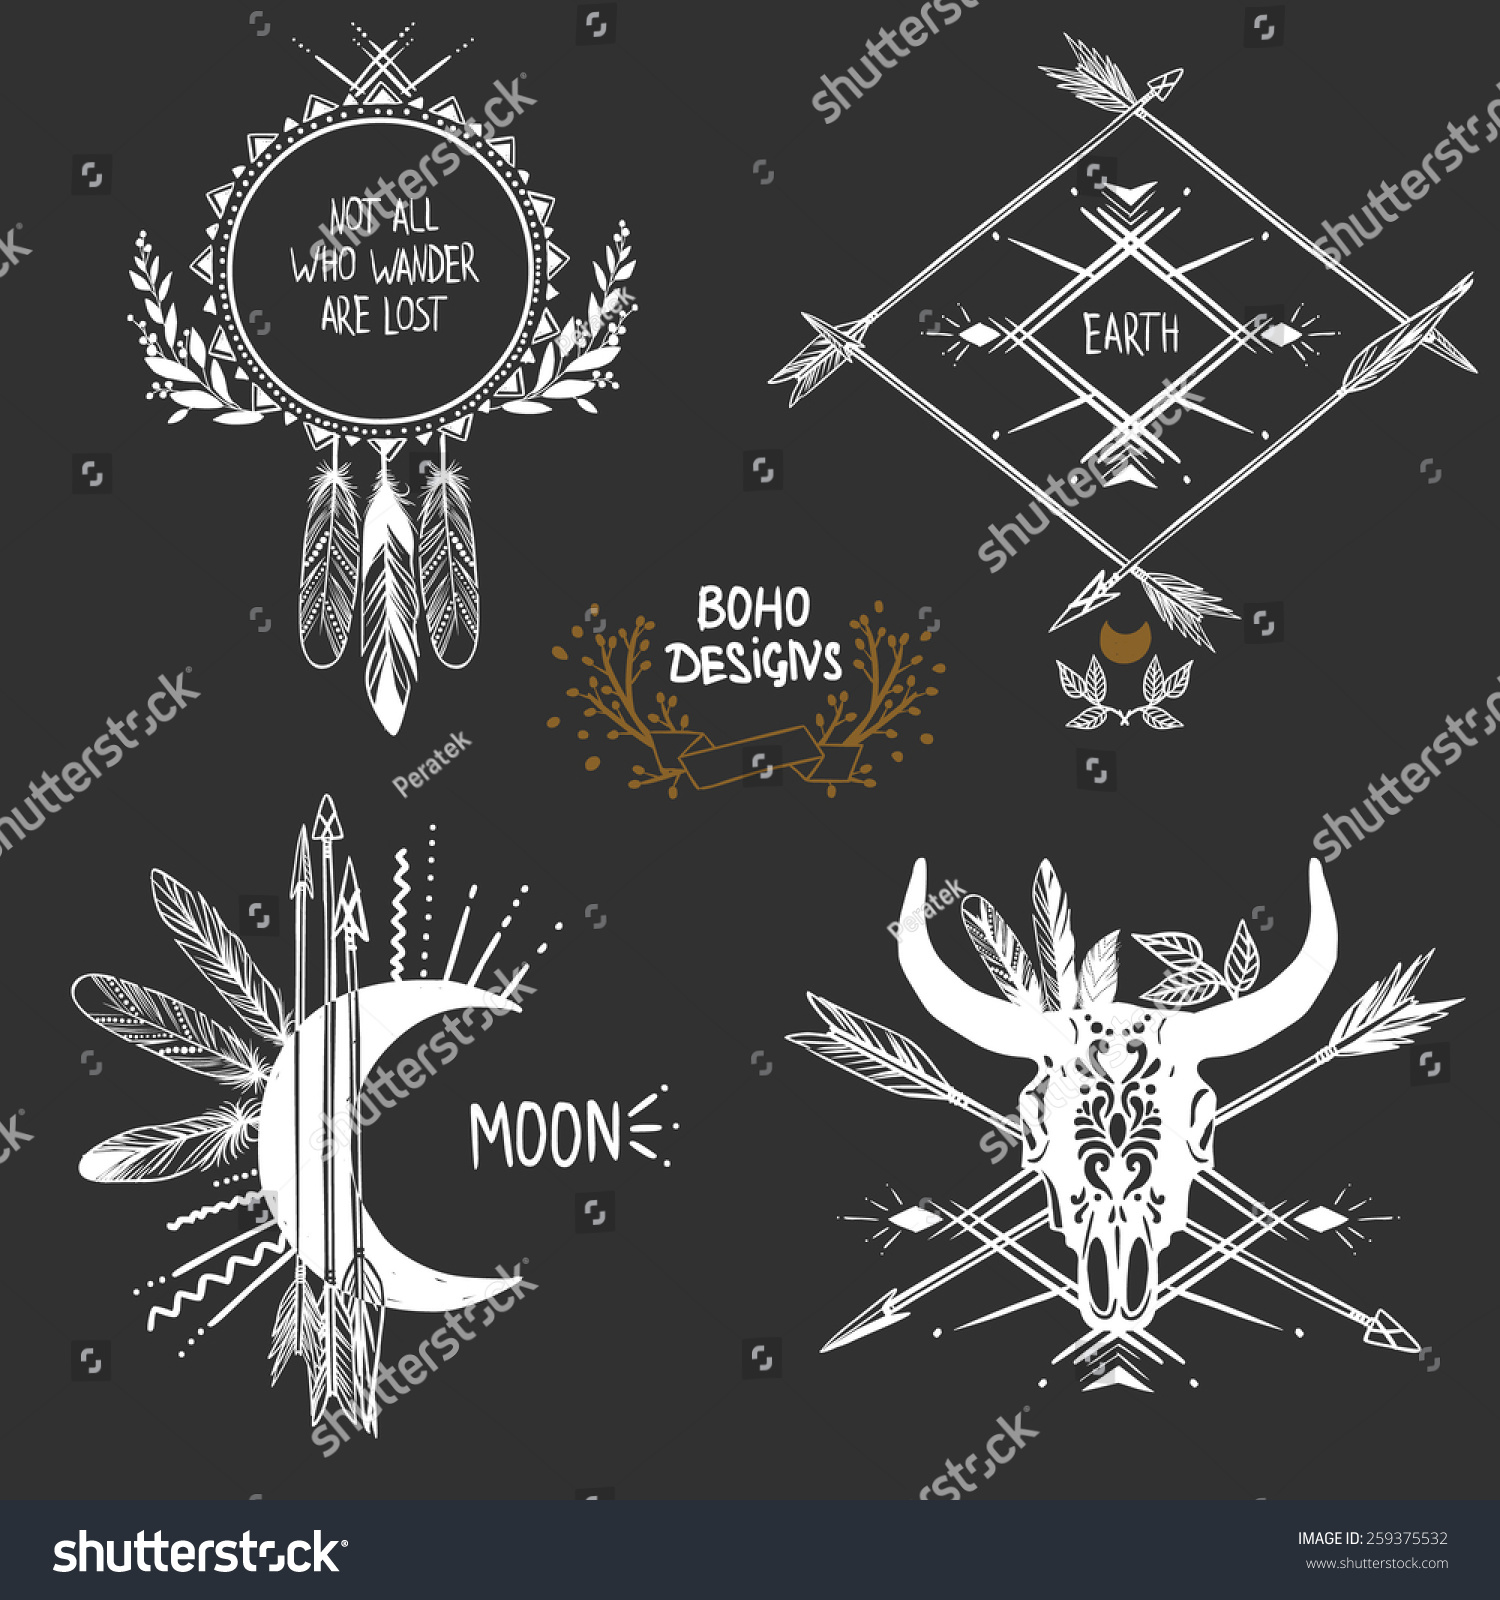 Bohemian Designs Vector Set Stock Vector 259375532 Shutterstock